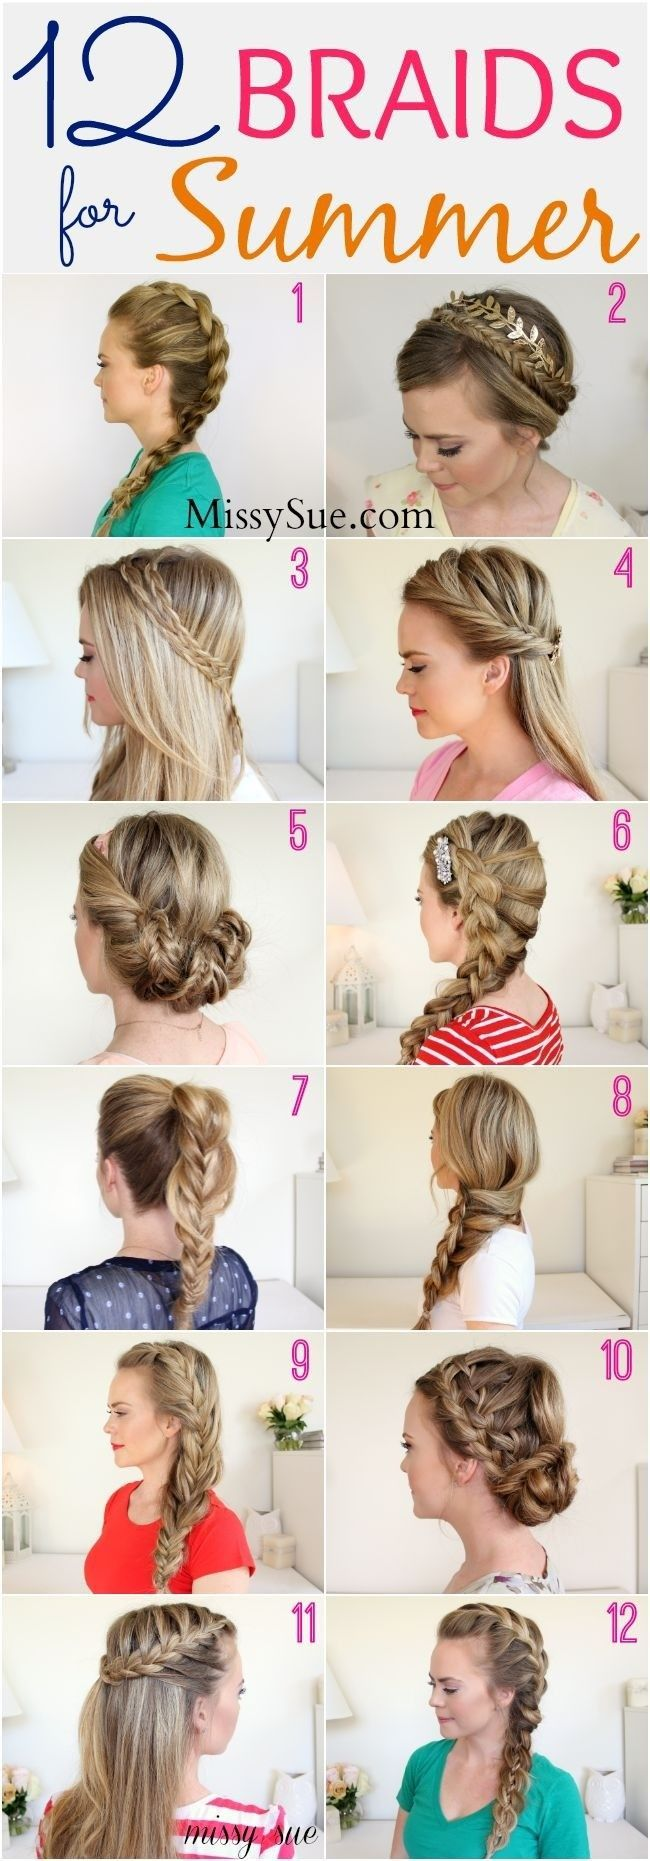 The-Best-20-Useful-Hair-Tutorials-On-Pinterest-26